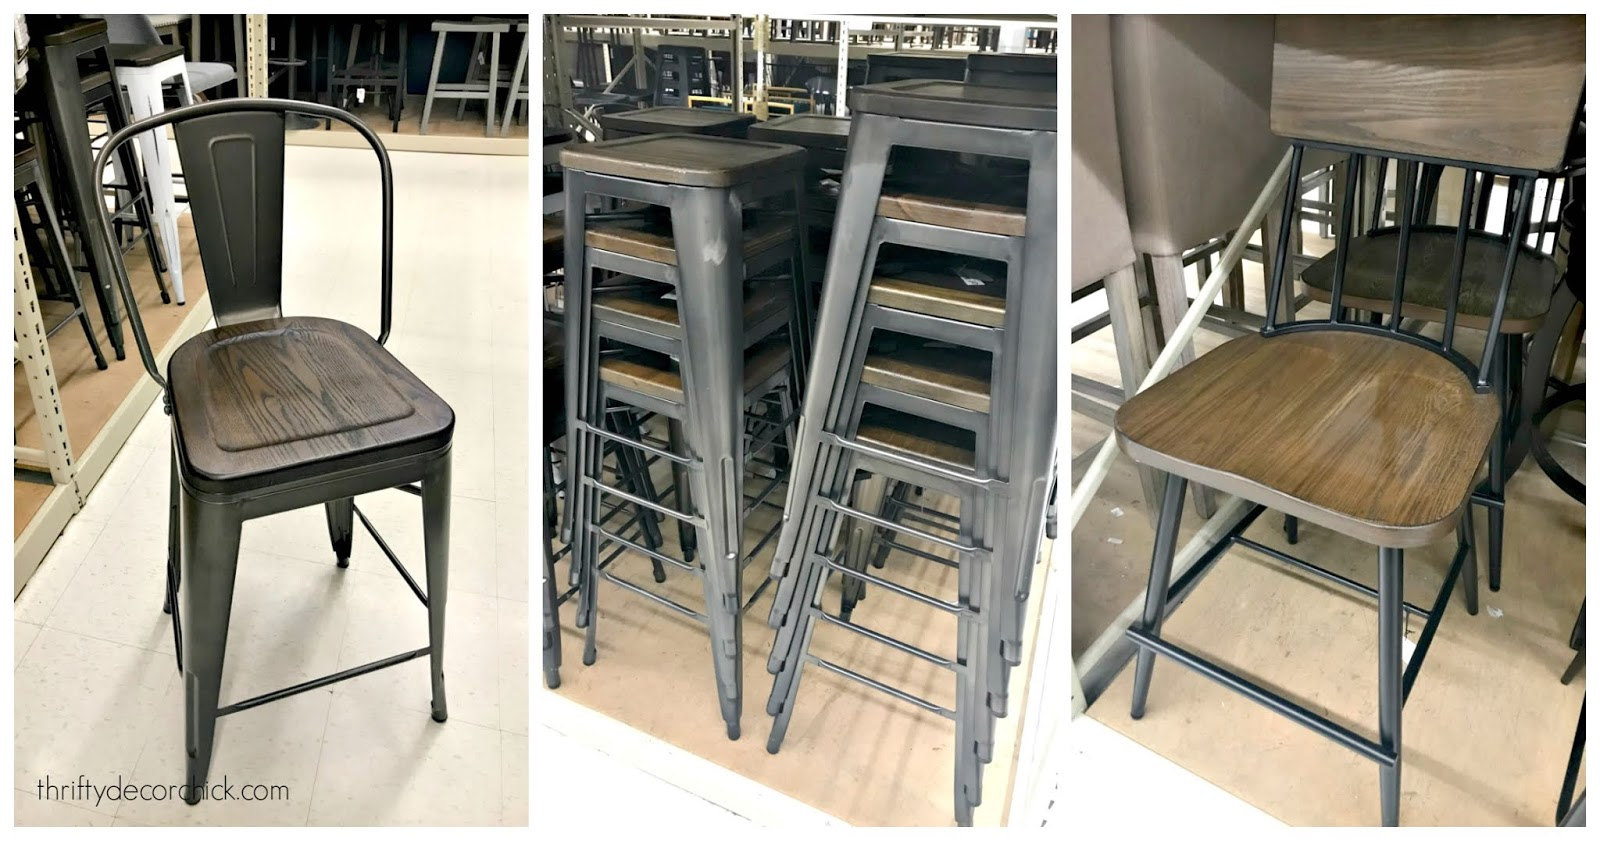 The Best Place For A Huge Selection Of Kitchen Stools And